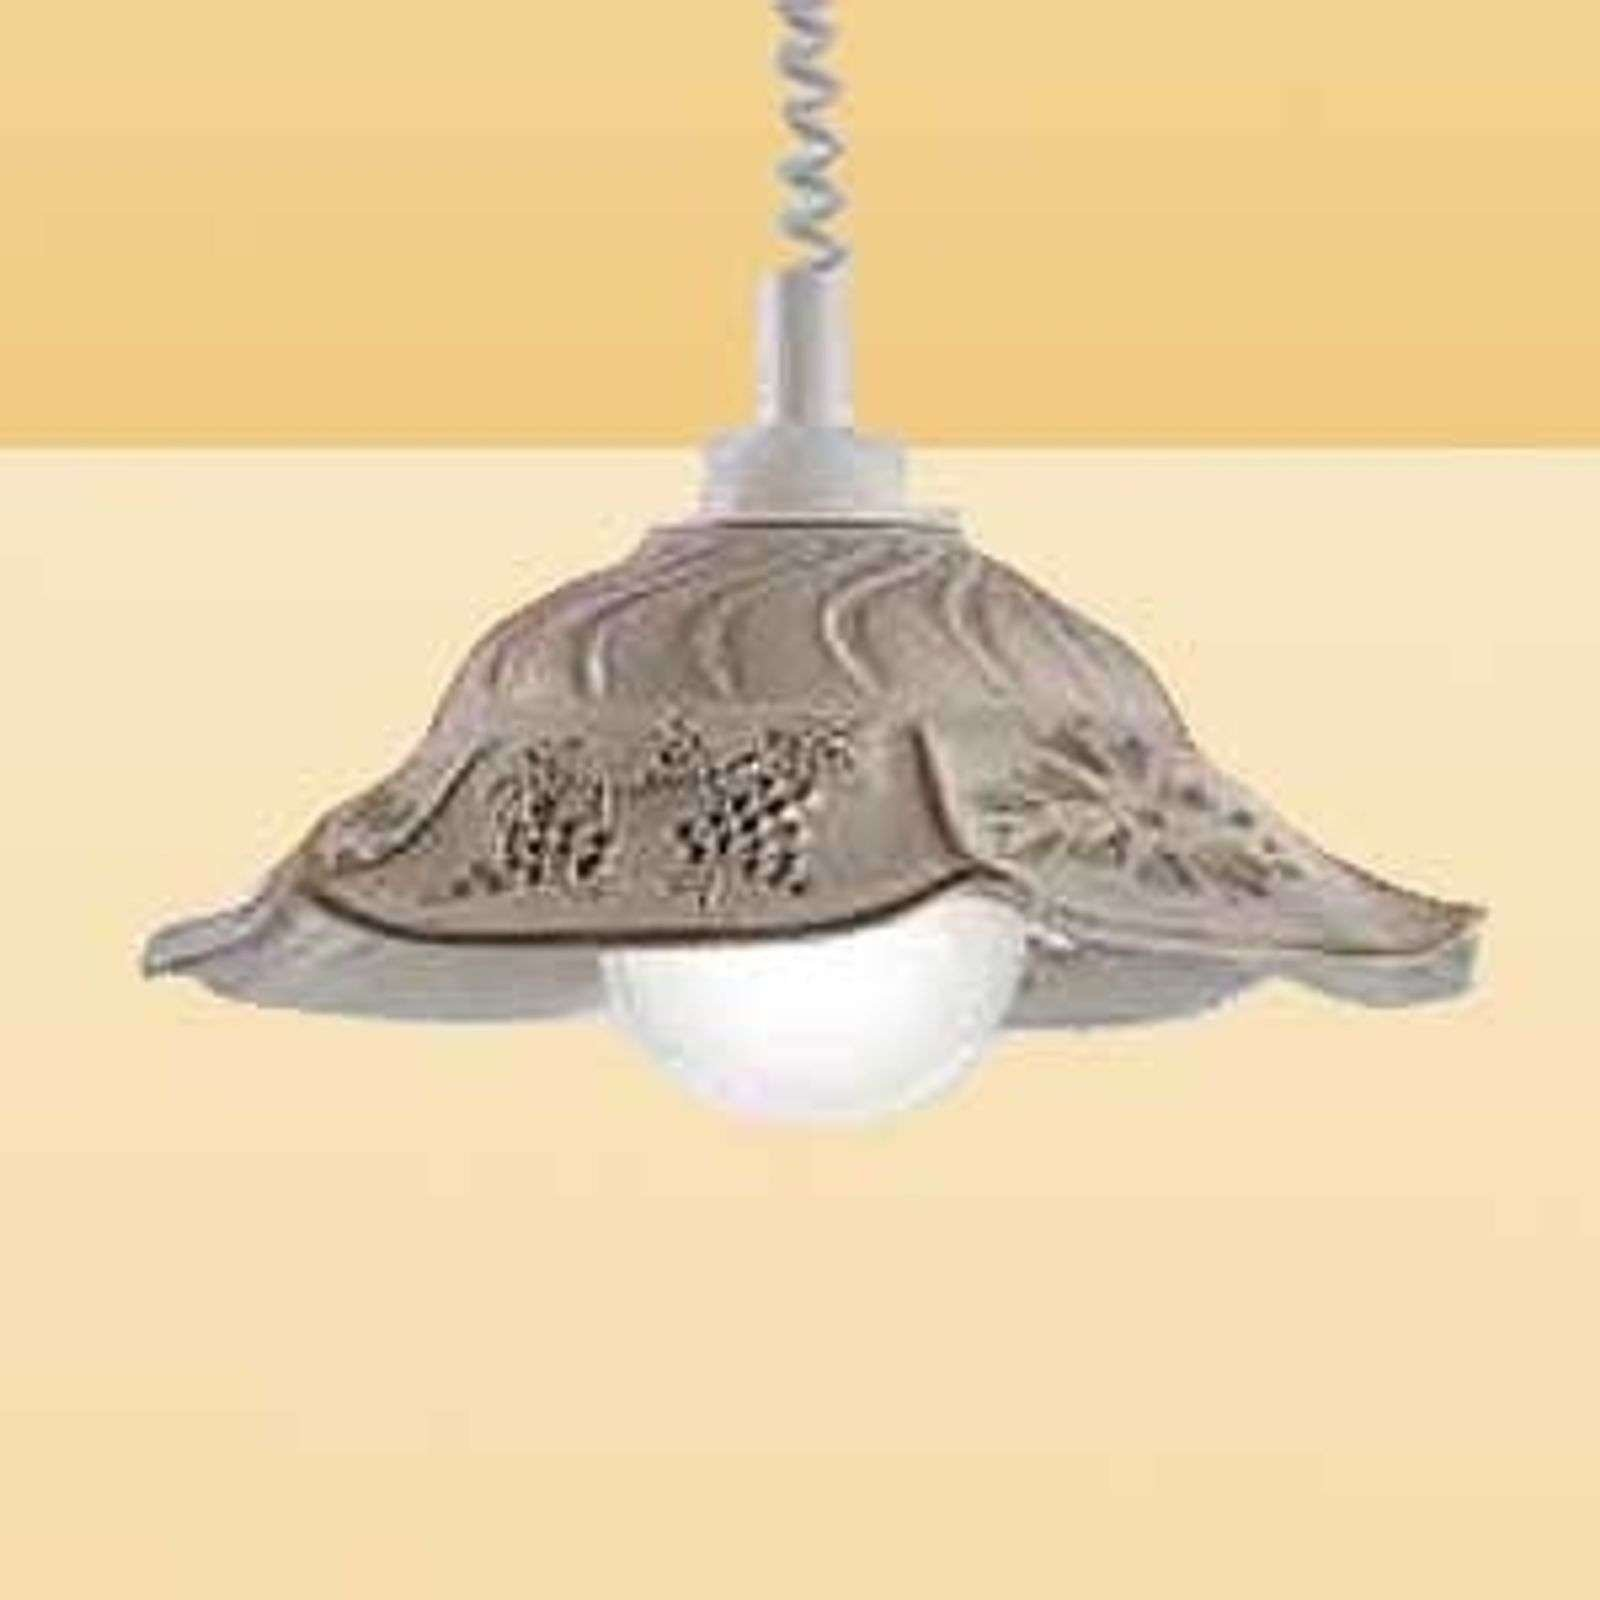 VITELA hanging light with a rustic appearance